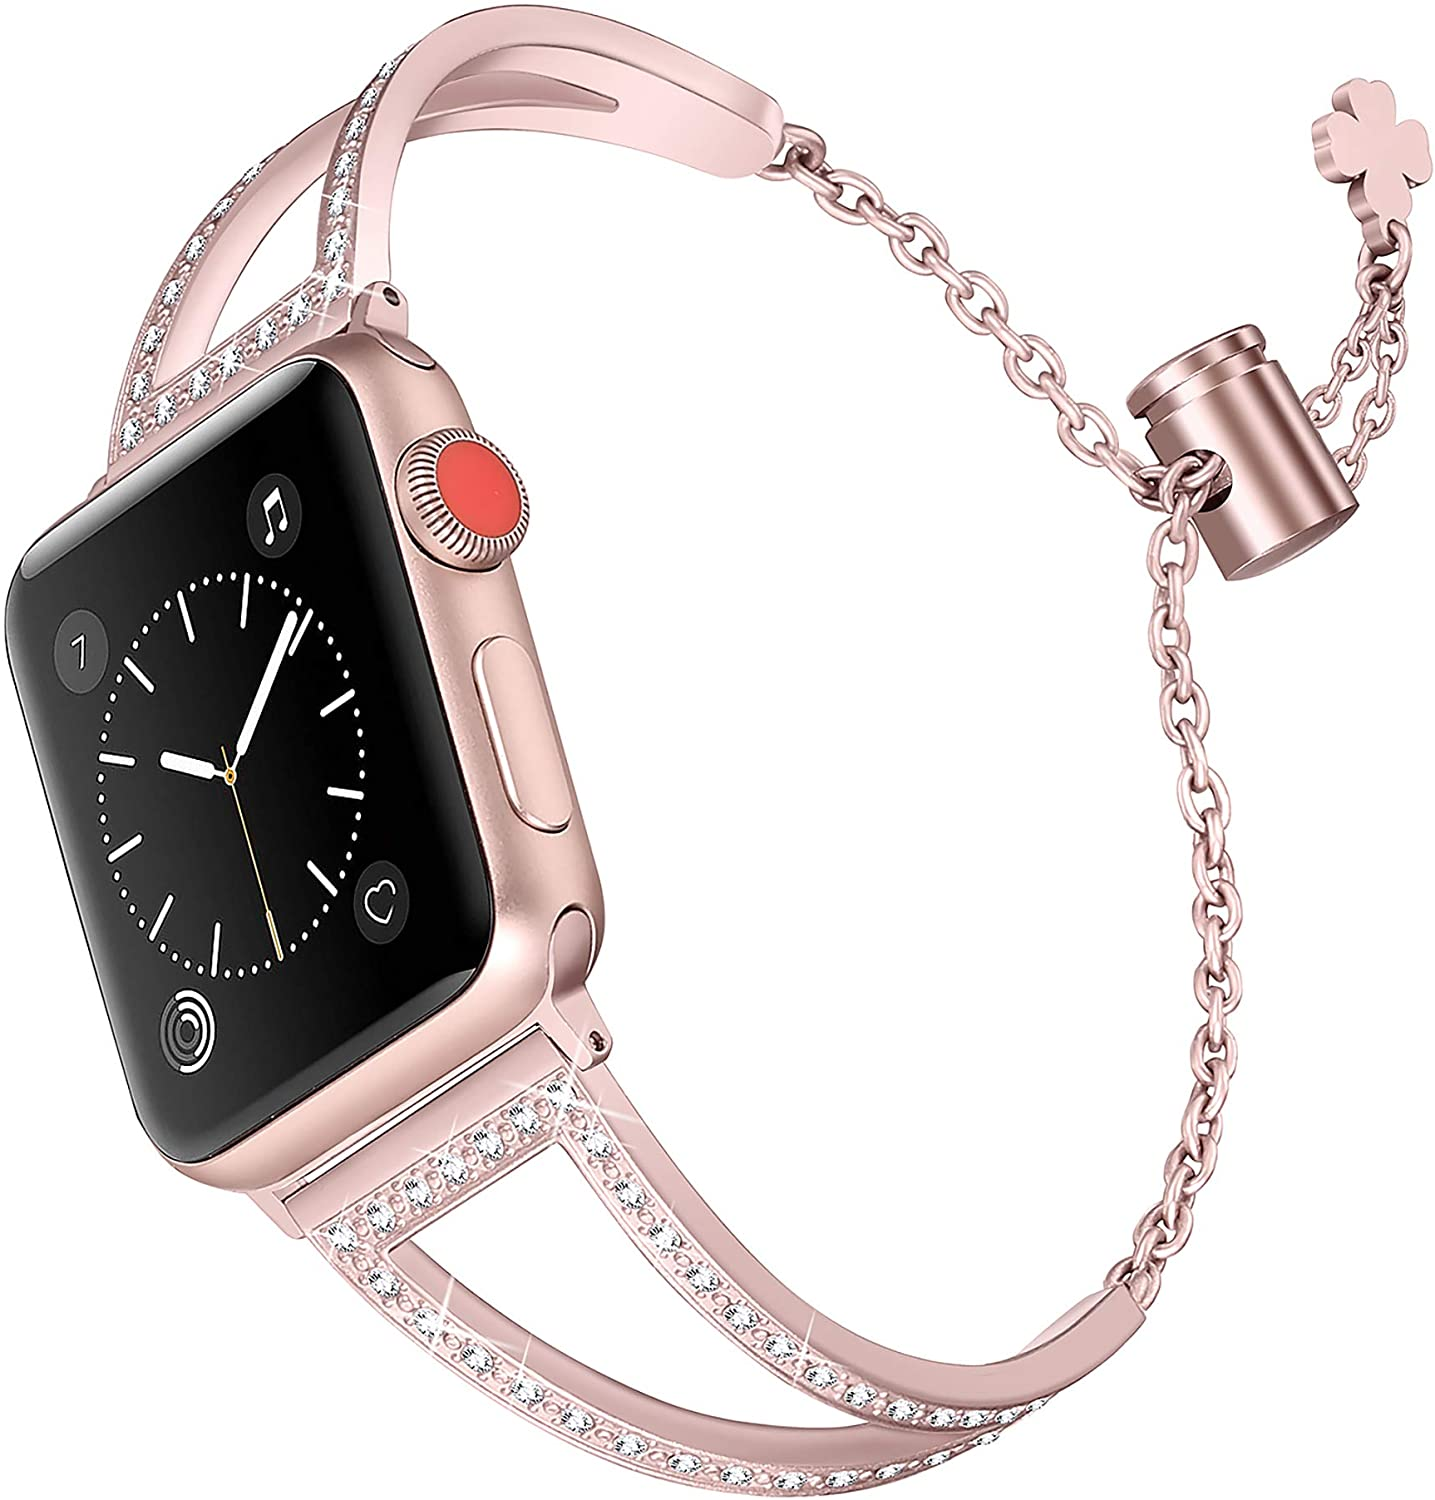 Secbolt Bling Bands Compatible with Apple Watch Bands 38mm 40mm 42mm 44mm iWatch SE Series 6/5/4/3/2/1, Women Dressy Metal Jewelry Bracelet Bangle Wristband Stainless Steel